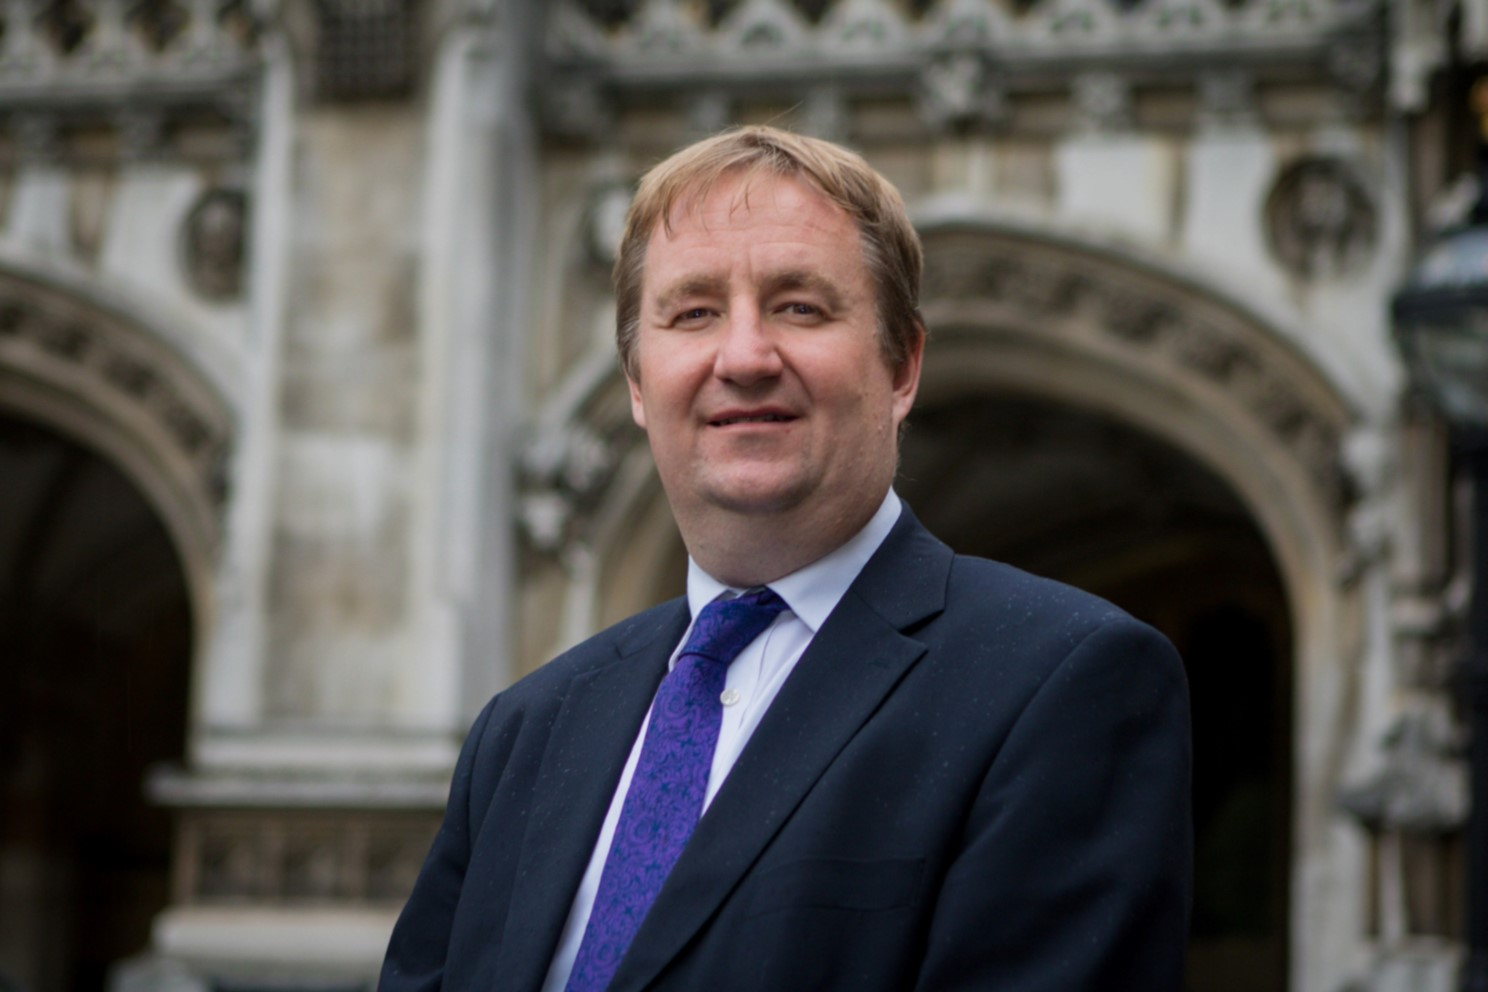 Nigel Mills - MP for Amber Valley